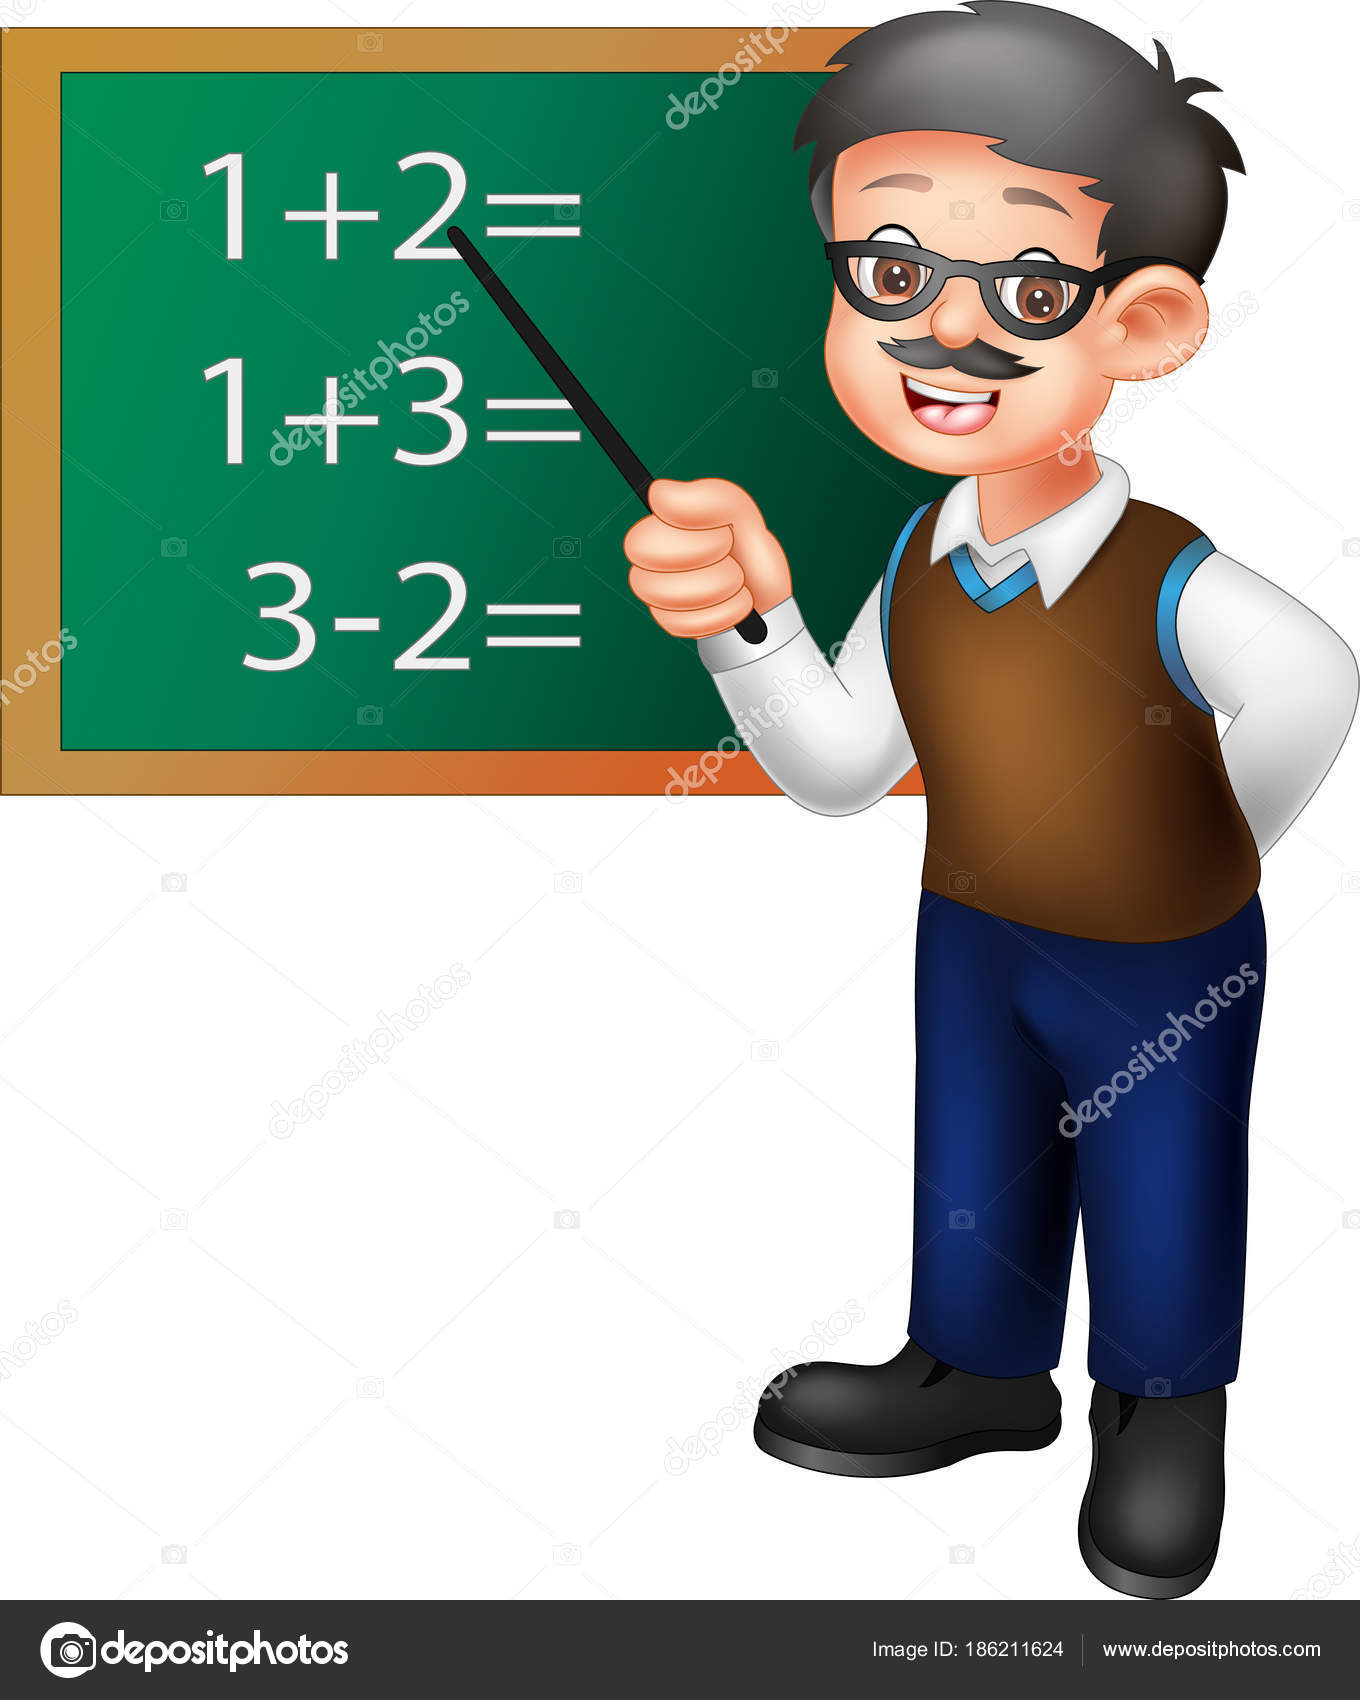 9 Clipart moreover The Color Of The Card To The Cartoon Female Teacher 2920117 also 536632111832808221 further readingch ion as well Stock Photo Handsome Mathematics Teacher Cartoon Standing. on teacher cartoon